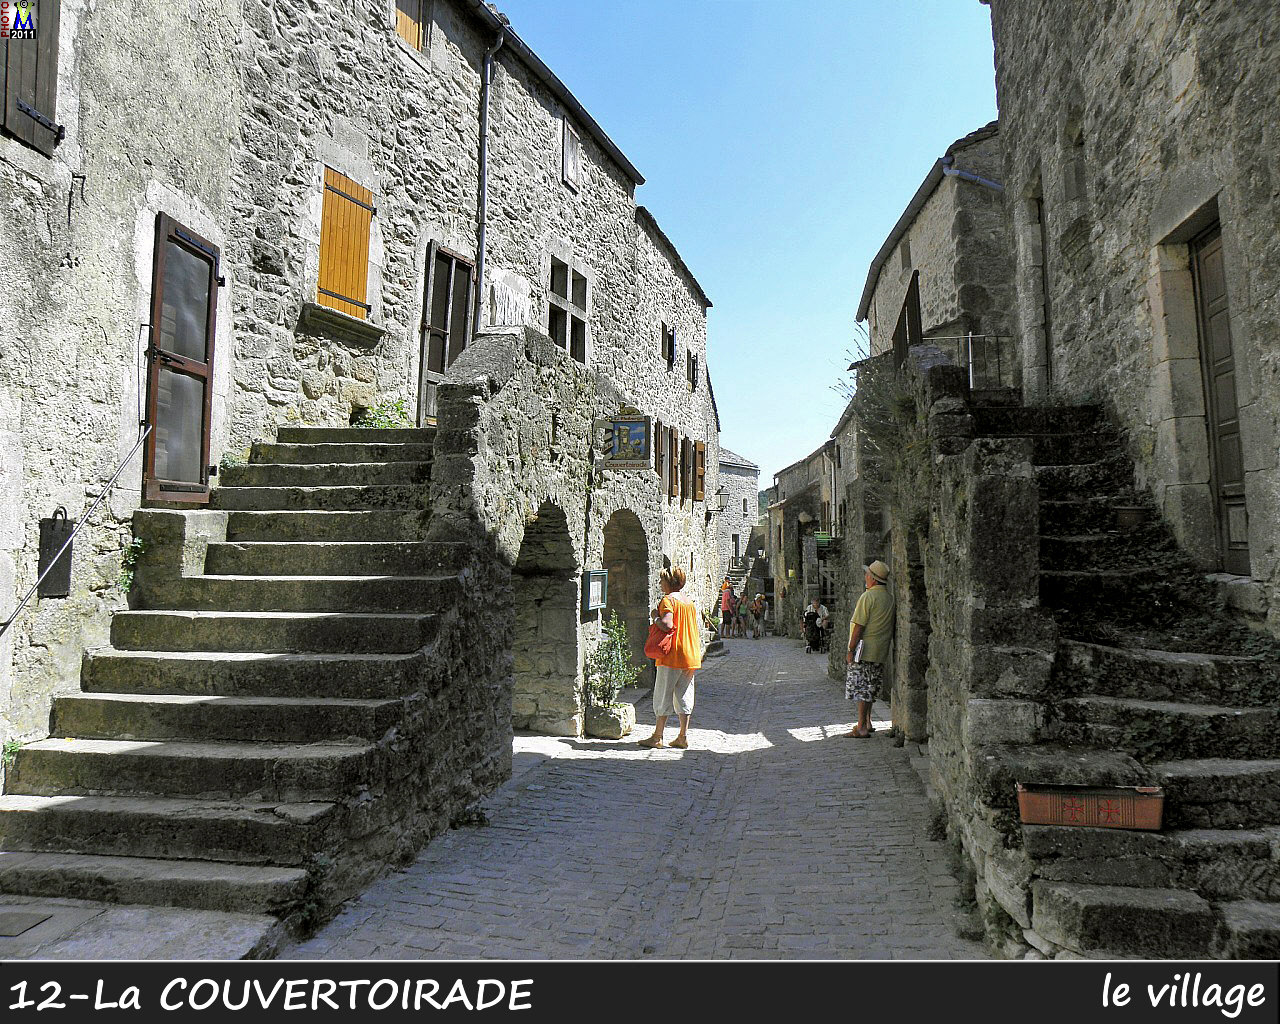 12couvertoirade_village_120.jpg